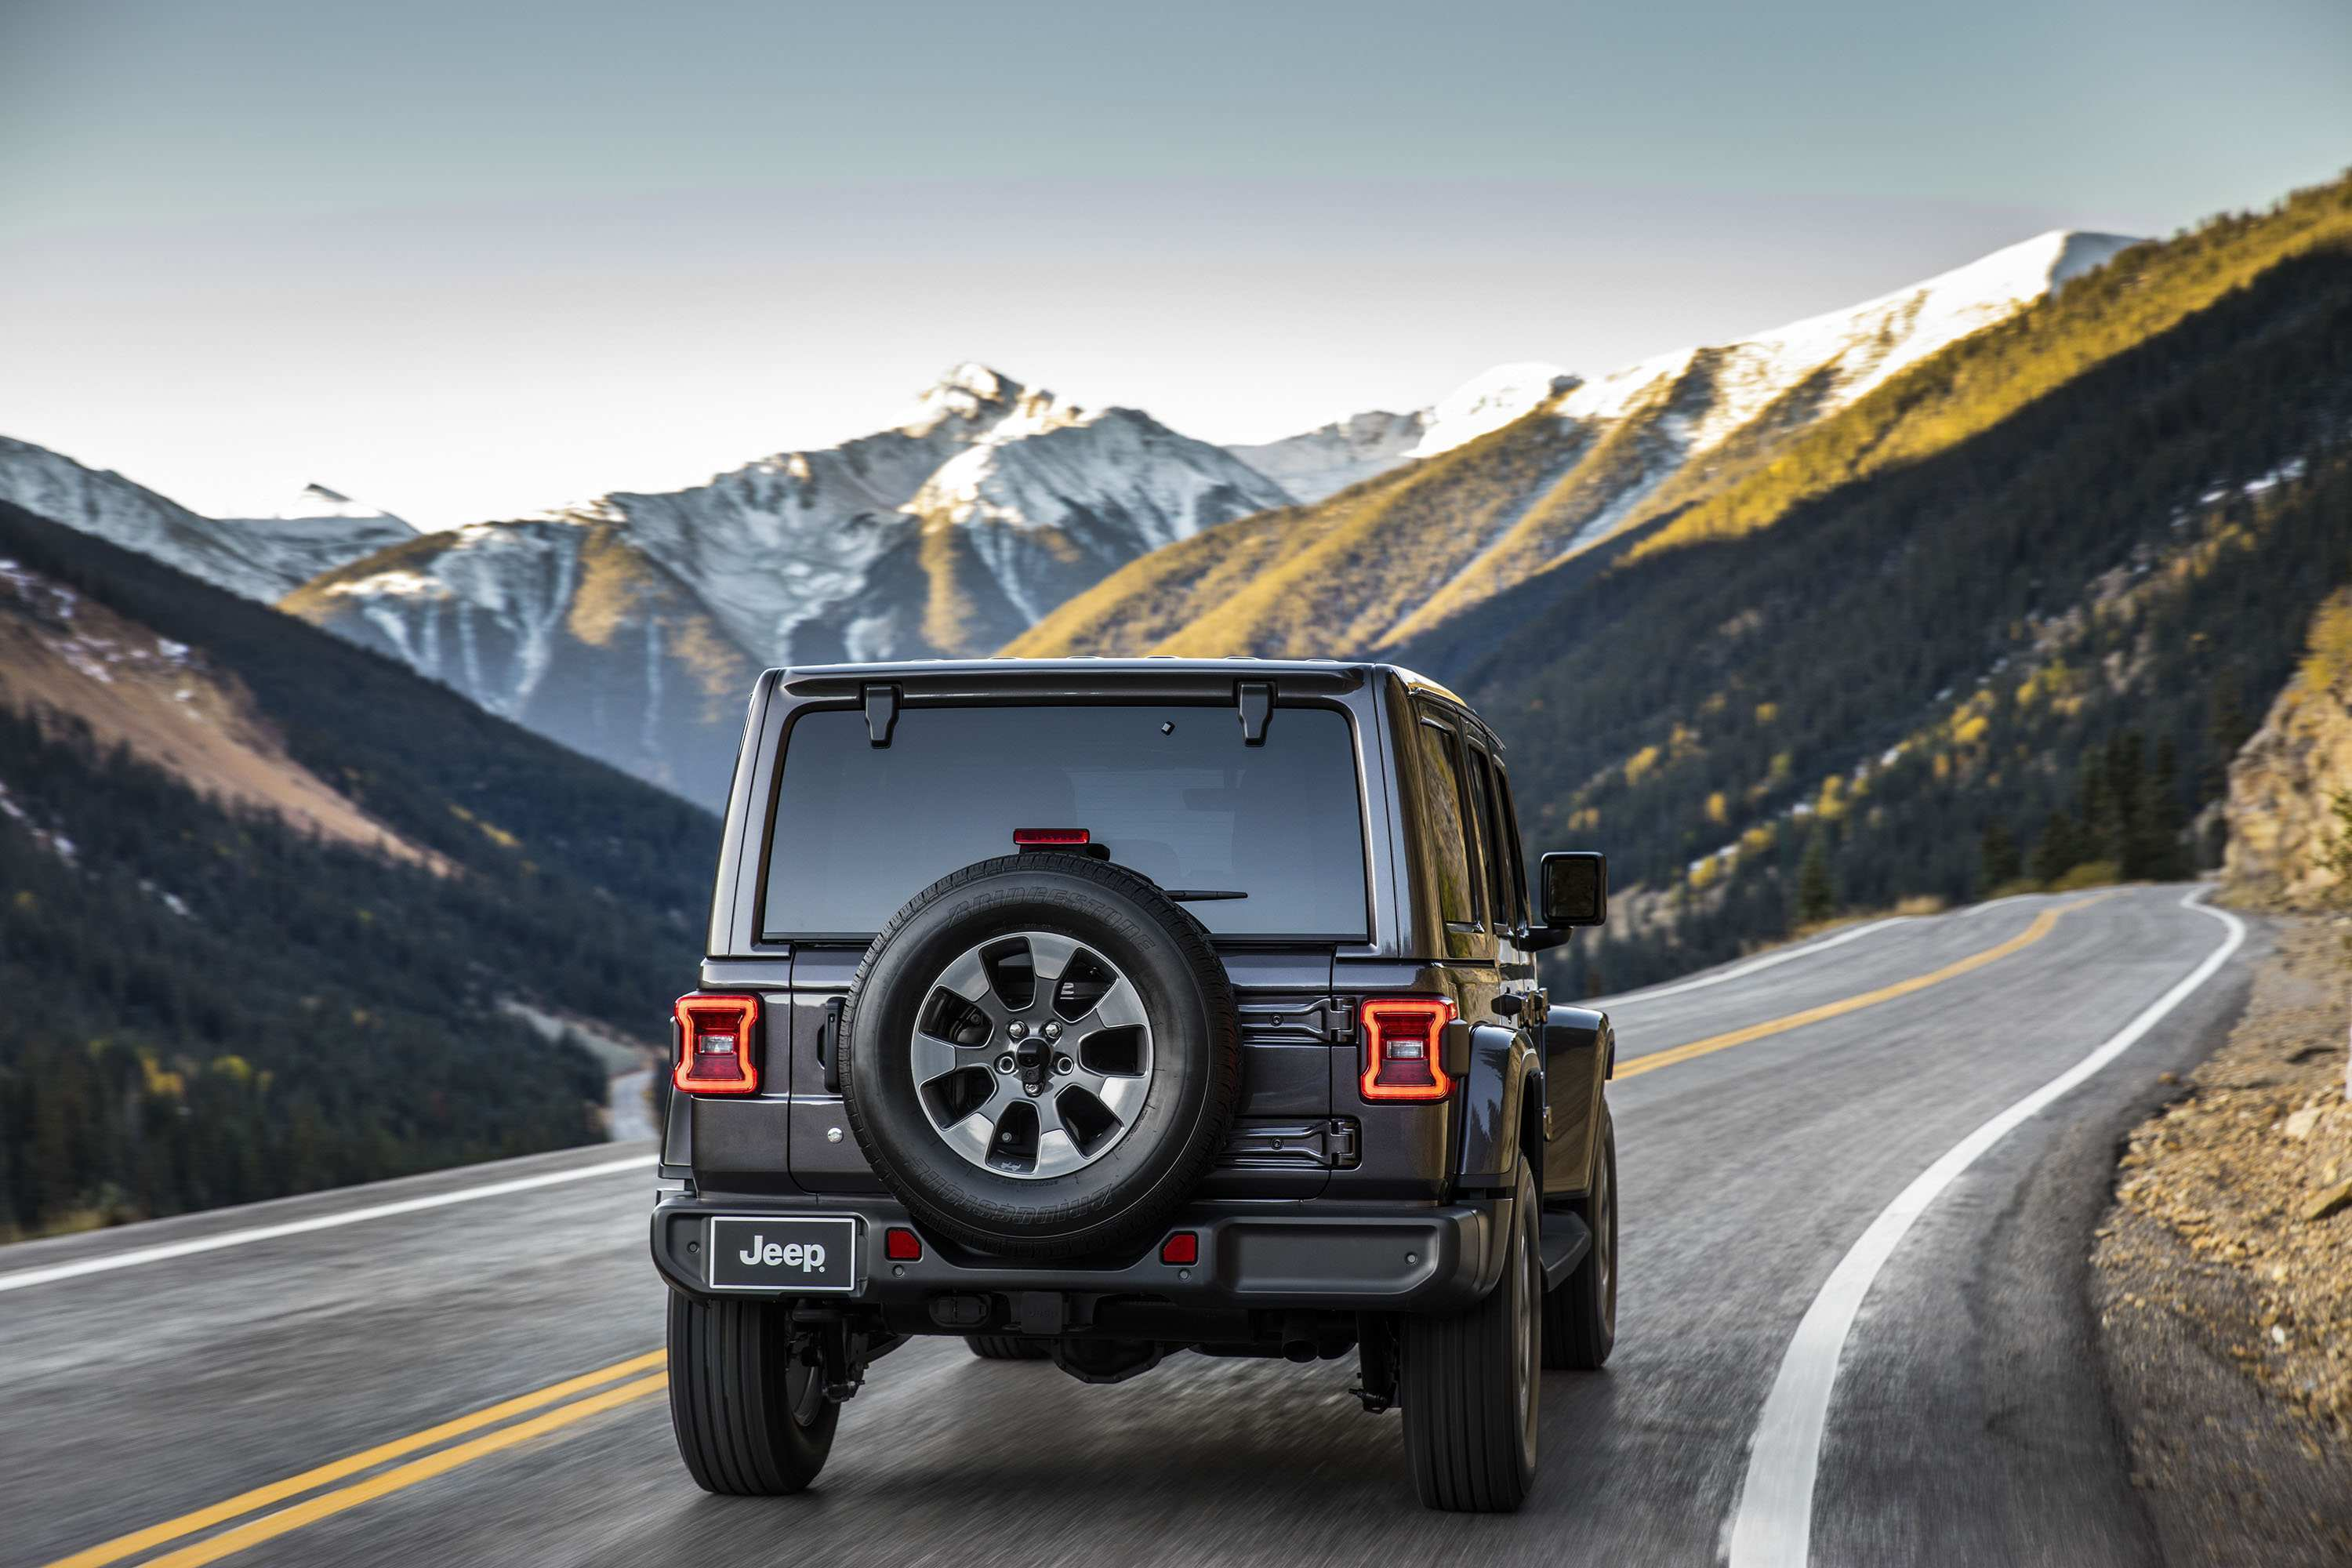 80 All New 2019 Jeep 2 0 Turbo Mpg History by 2019 Jeep 2 0 Turbo Mpg